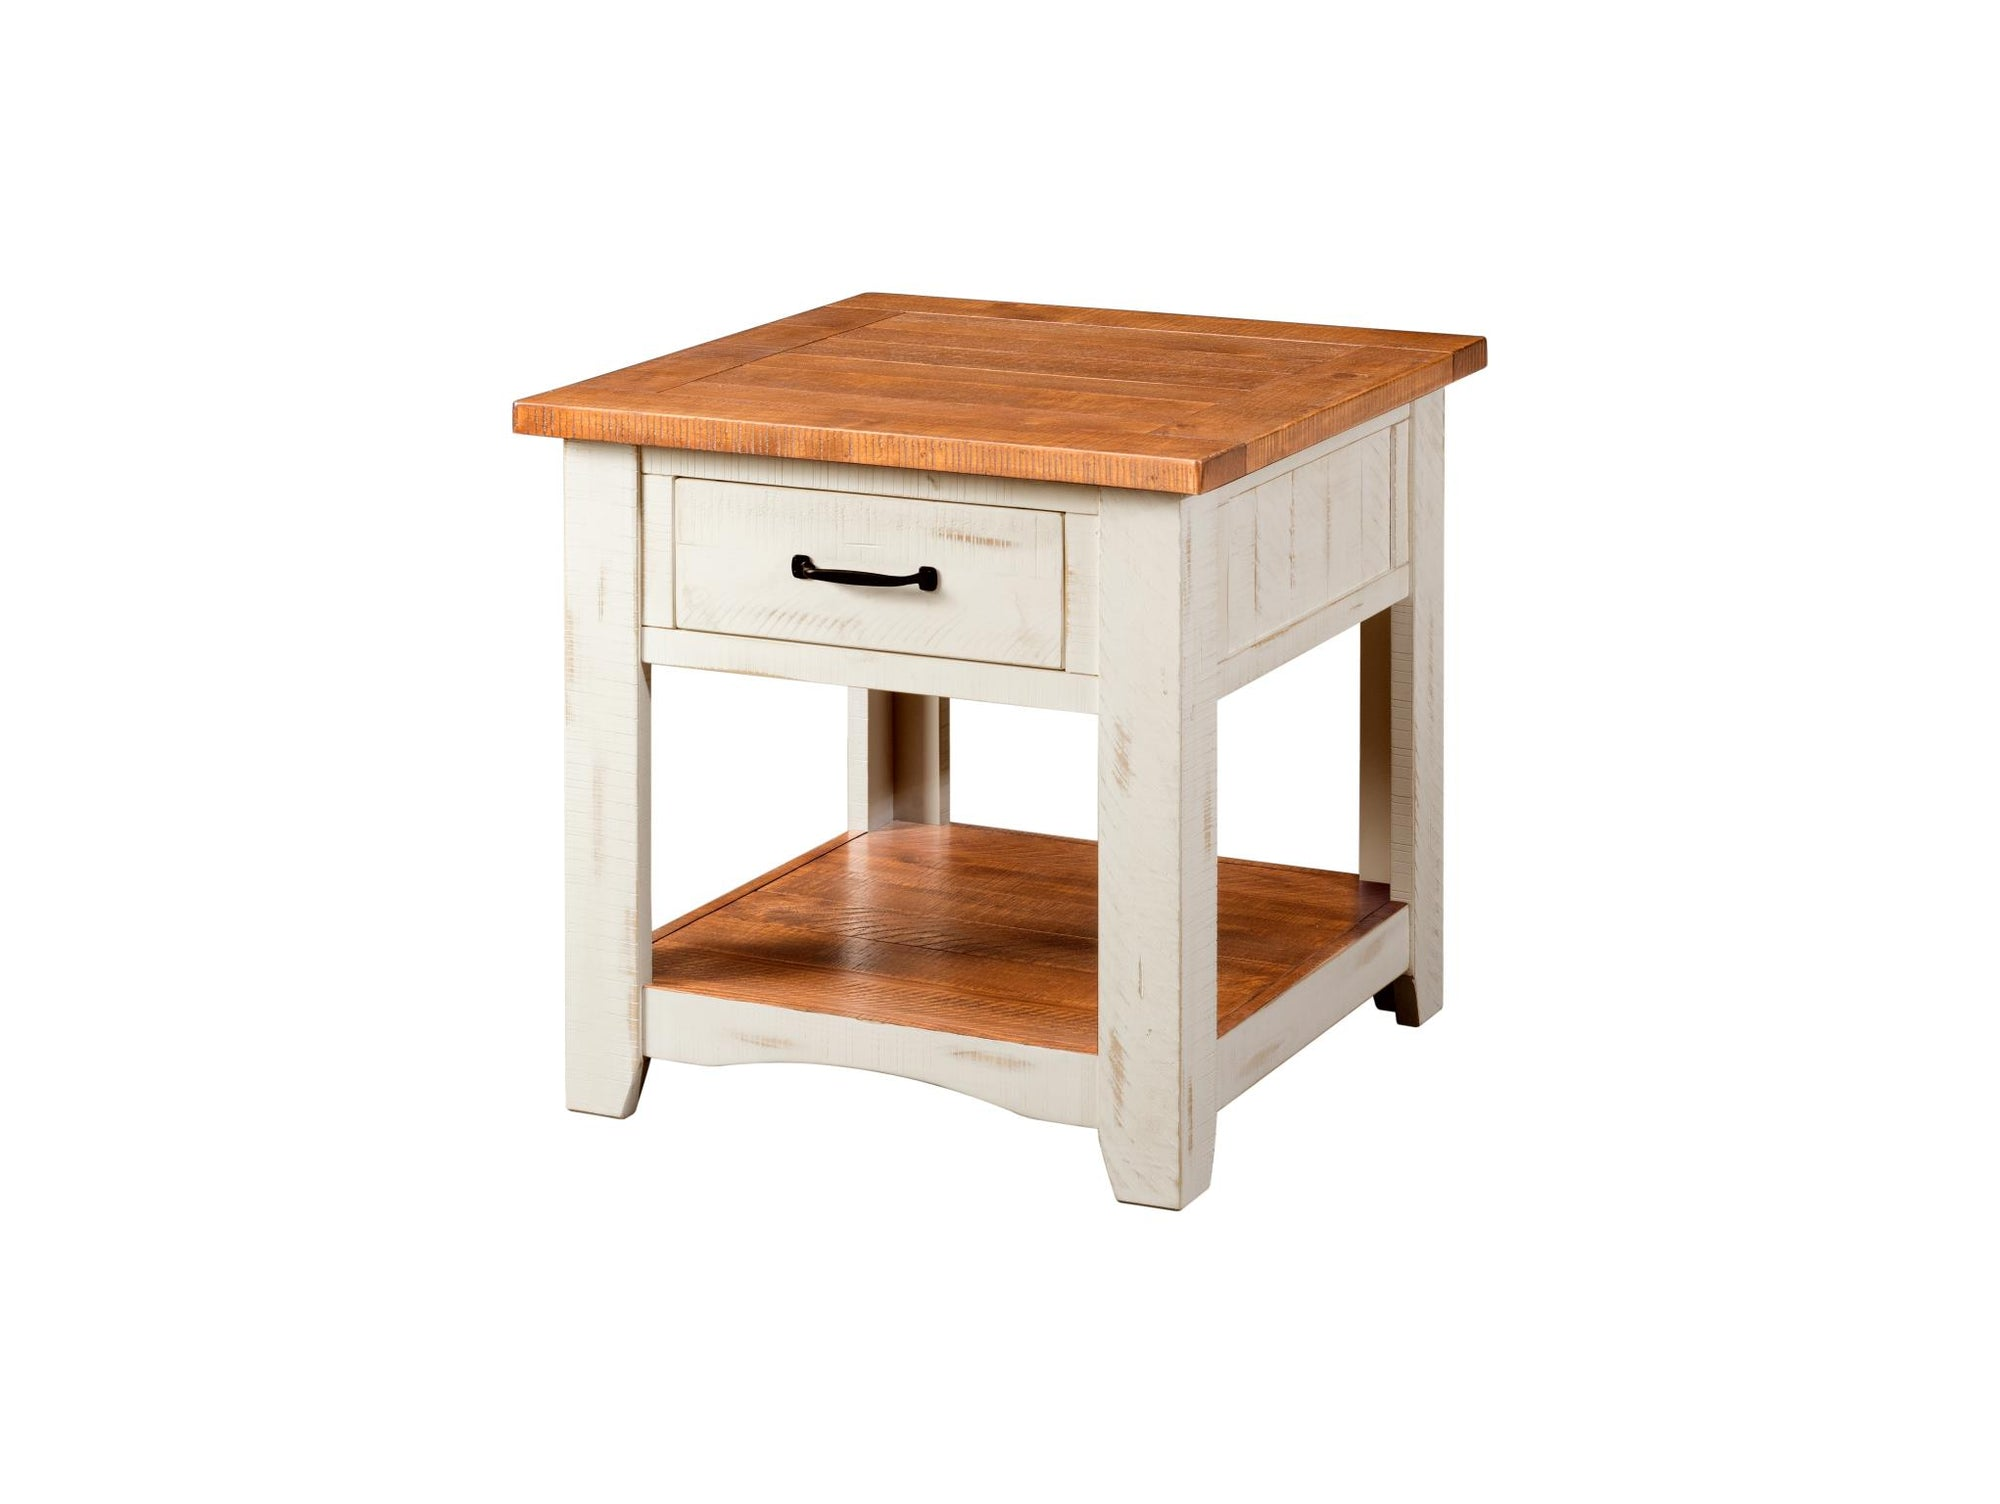 Rustic Occasional Nightstand/End Table - Antique white & honey